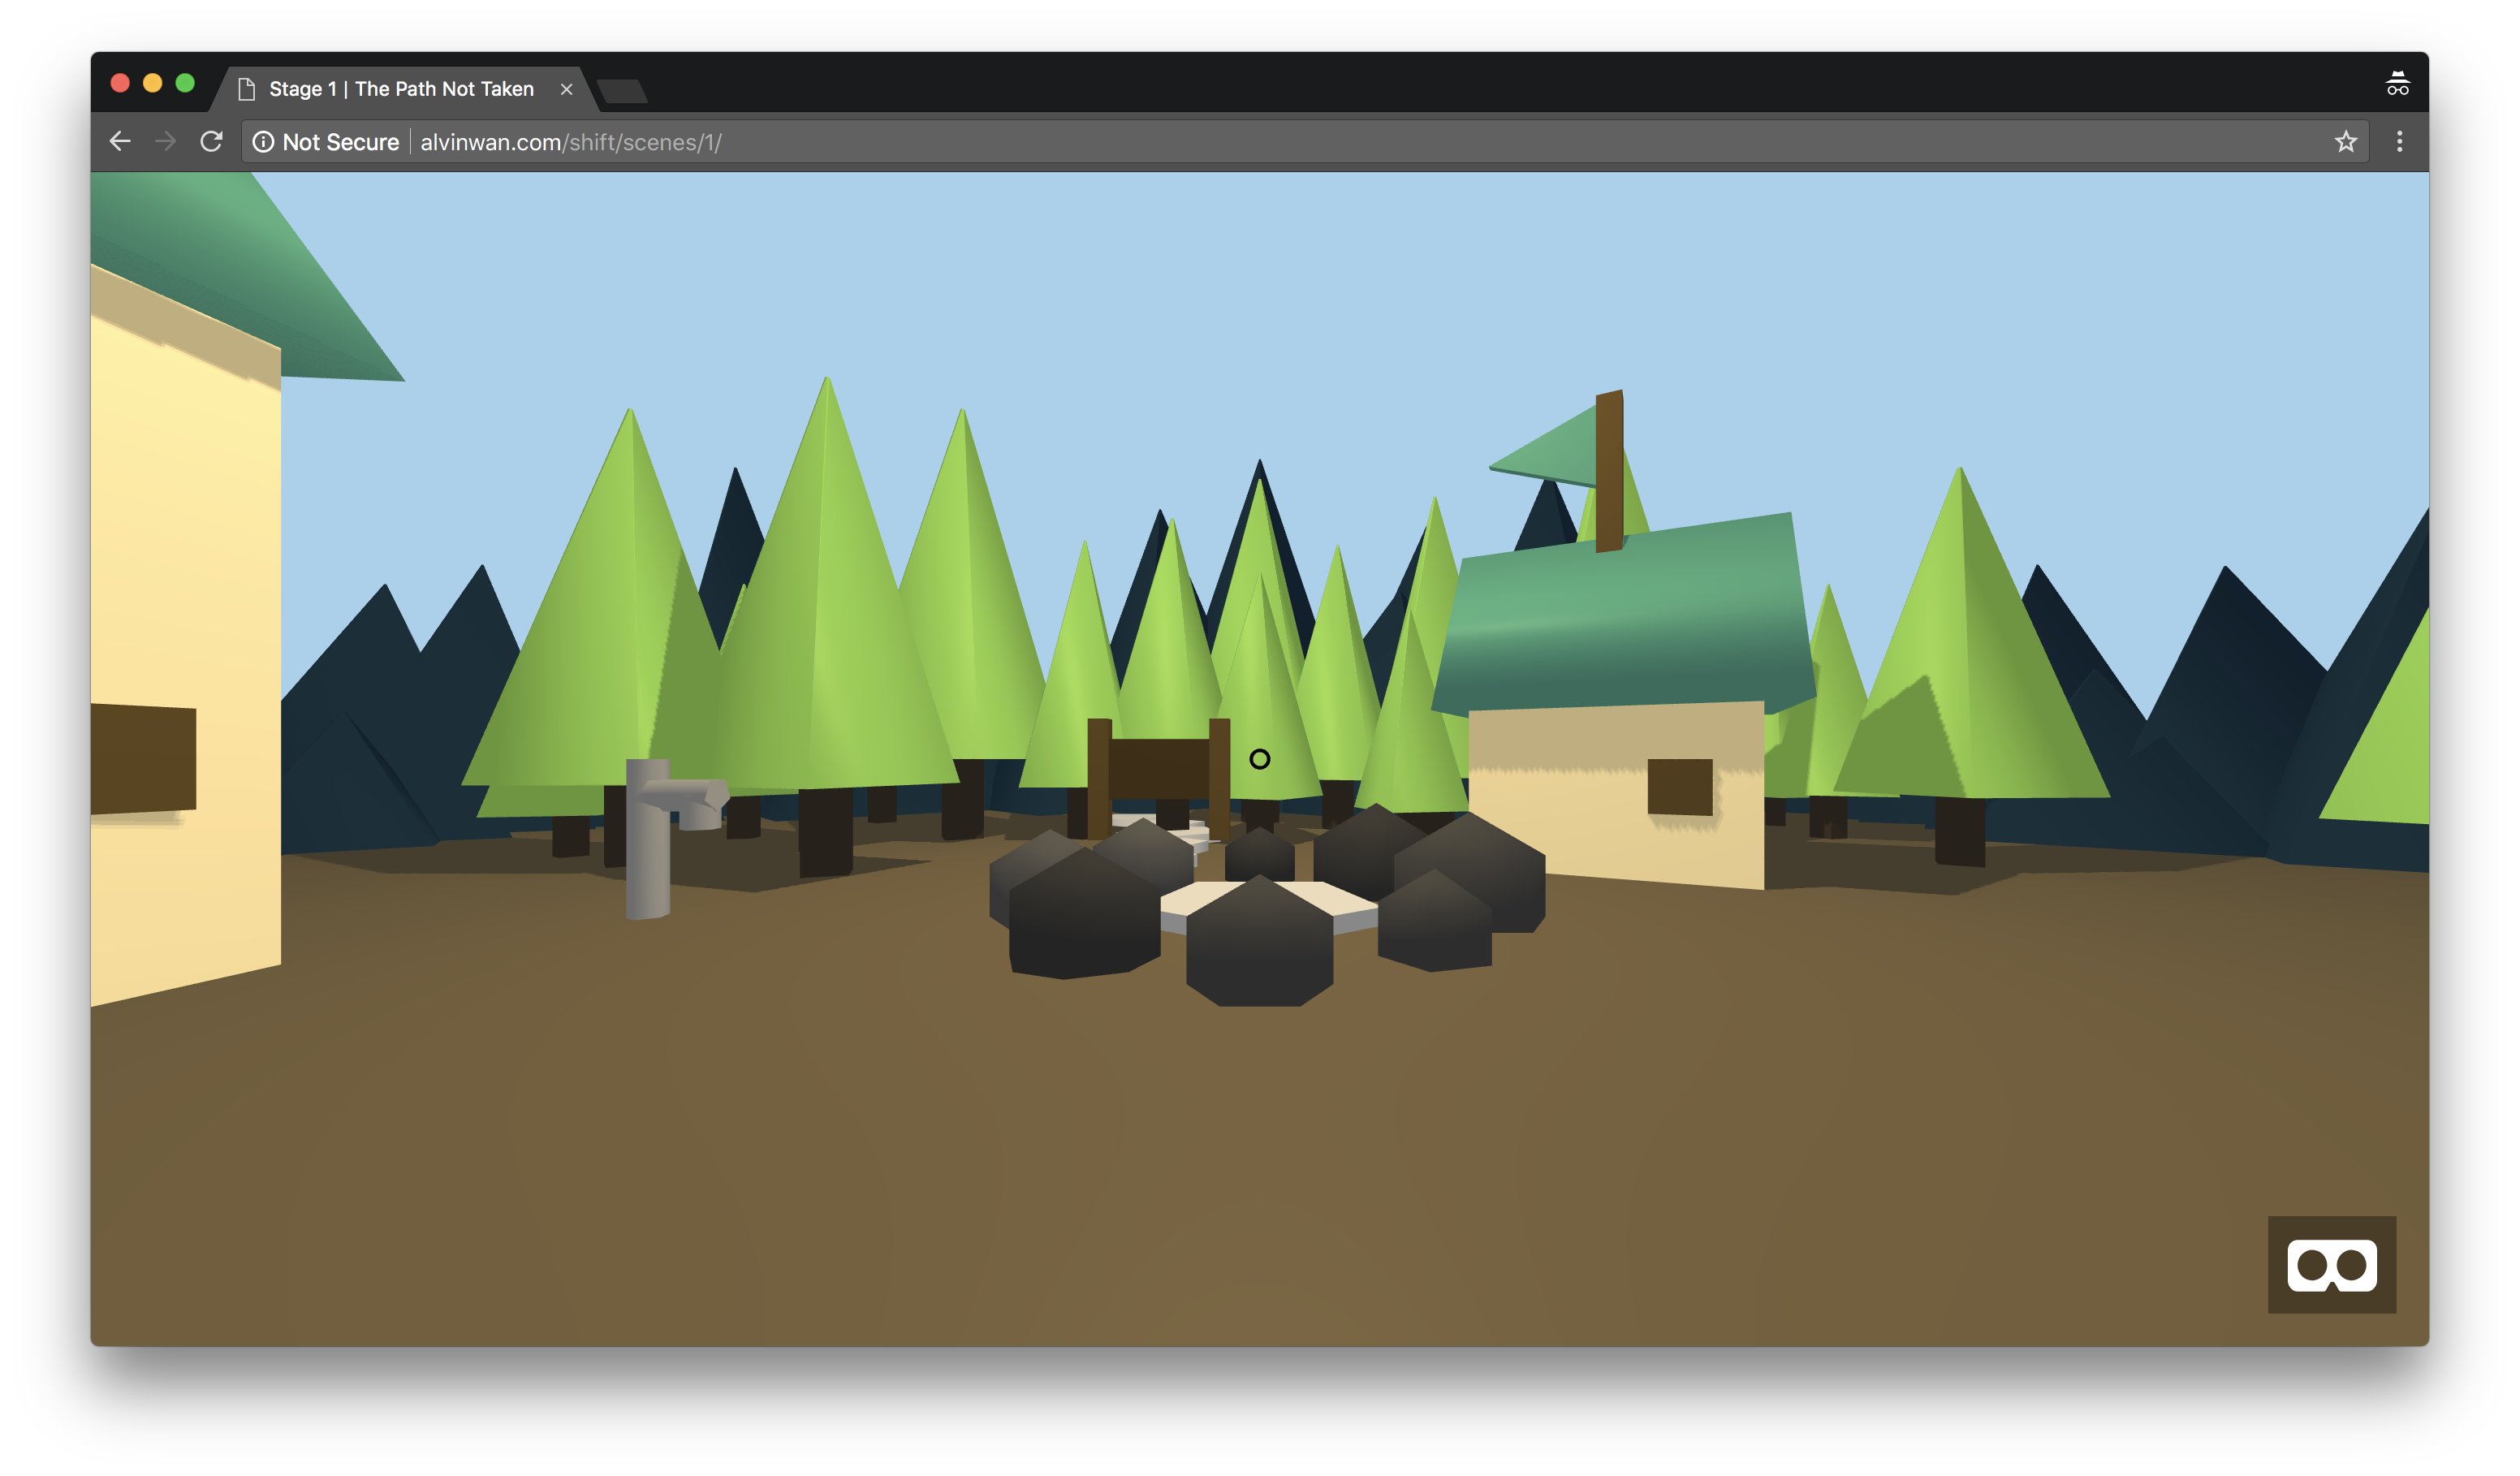 How To Build A Virtual Reality Model With A Real-Time Cross-Device